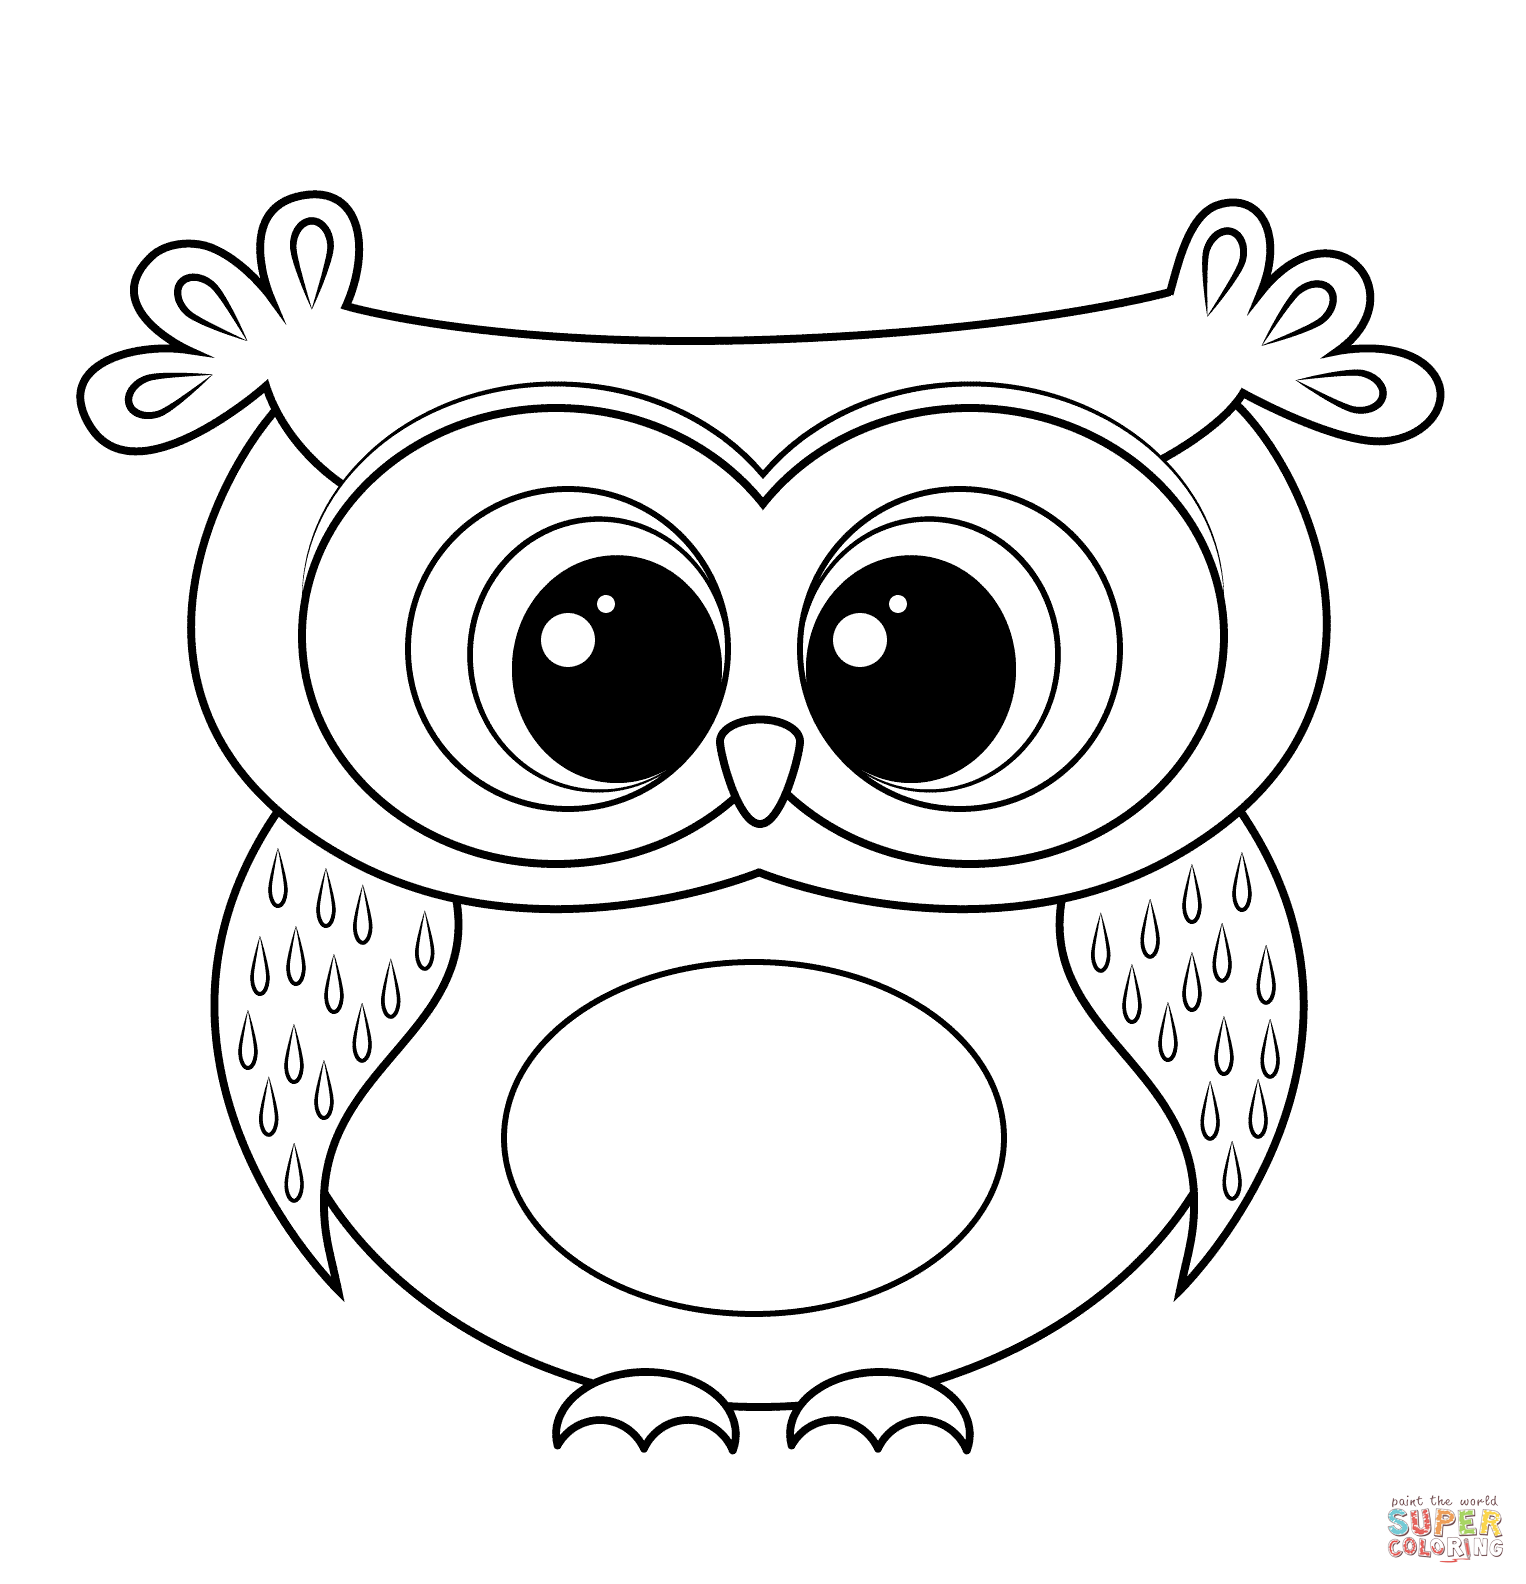 printable owl images owls animal coloring pages pictures owl images printable